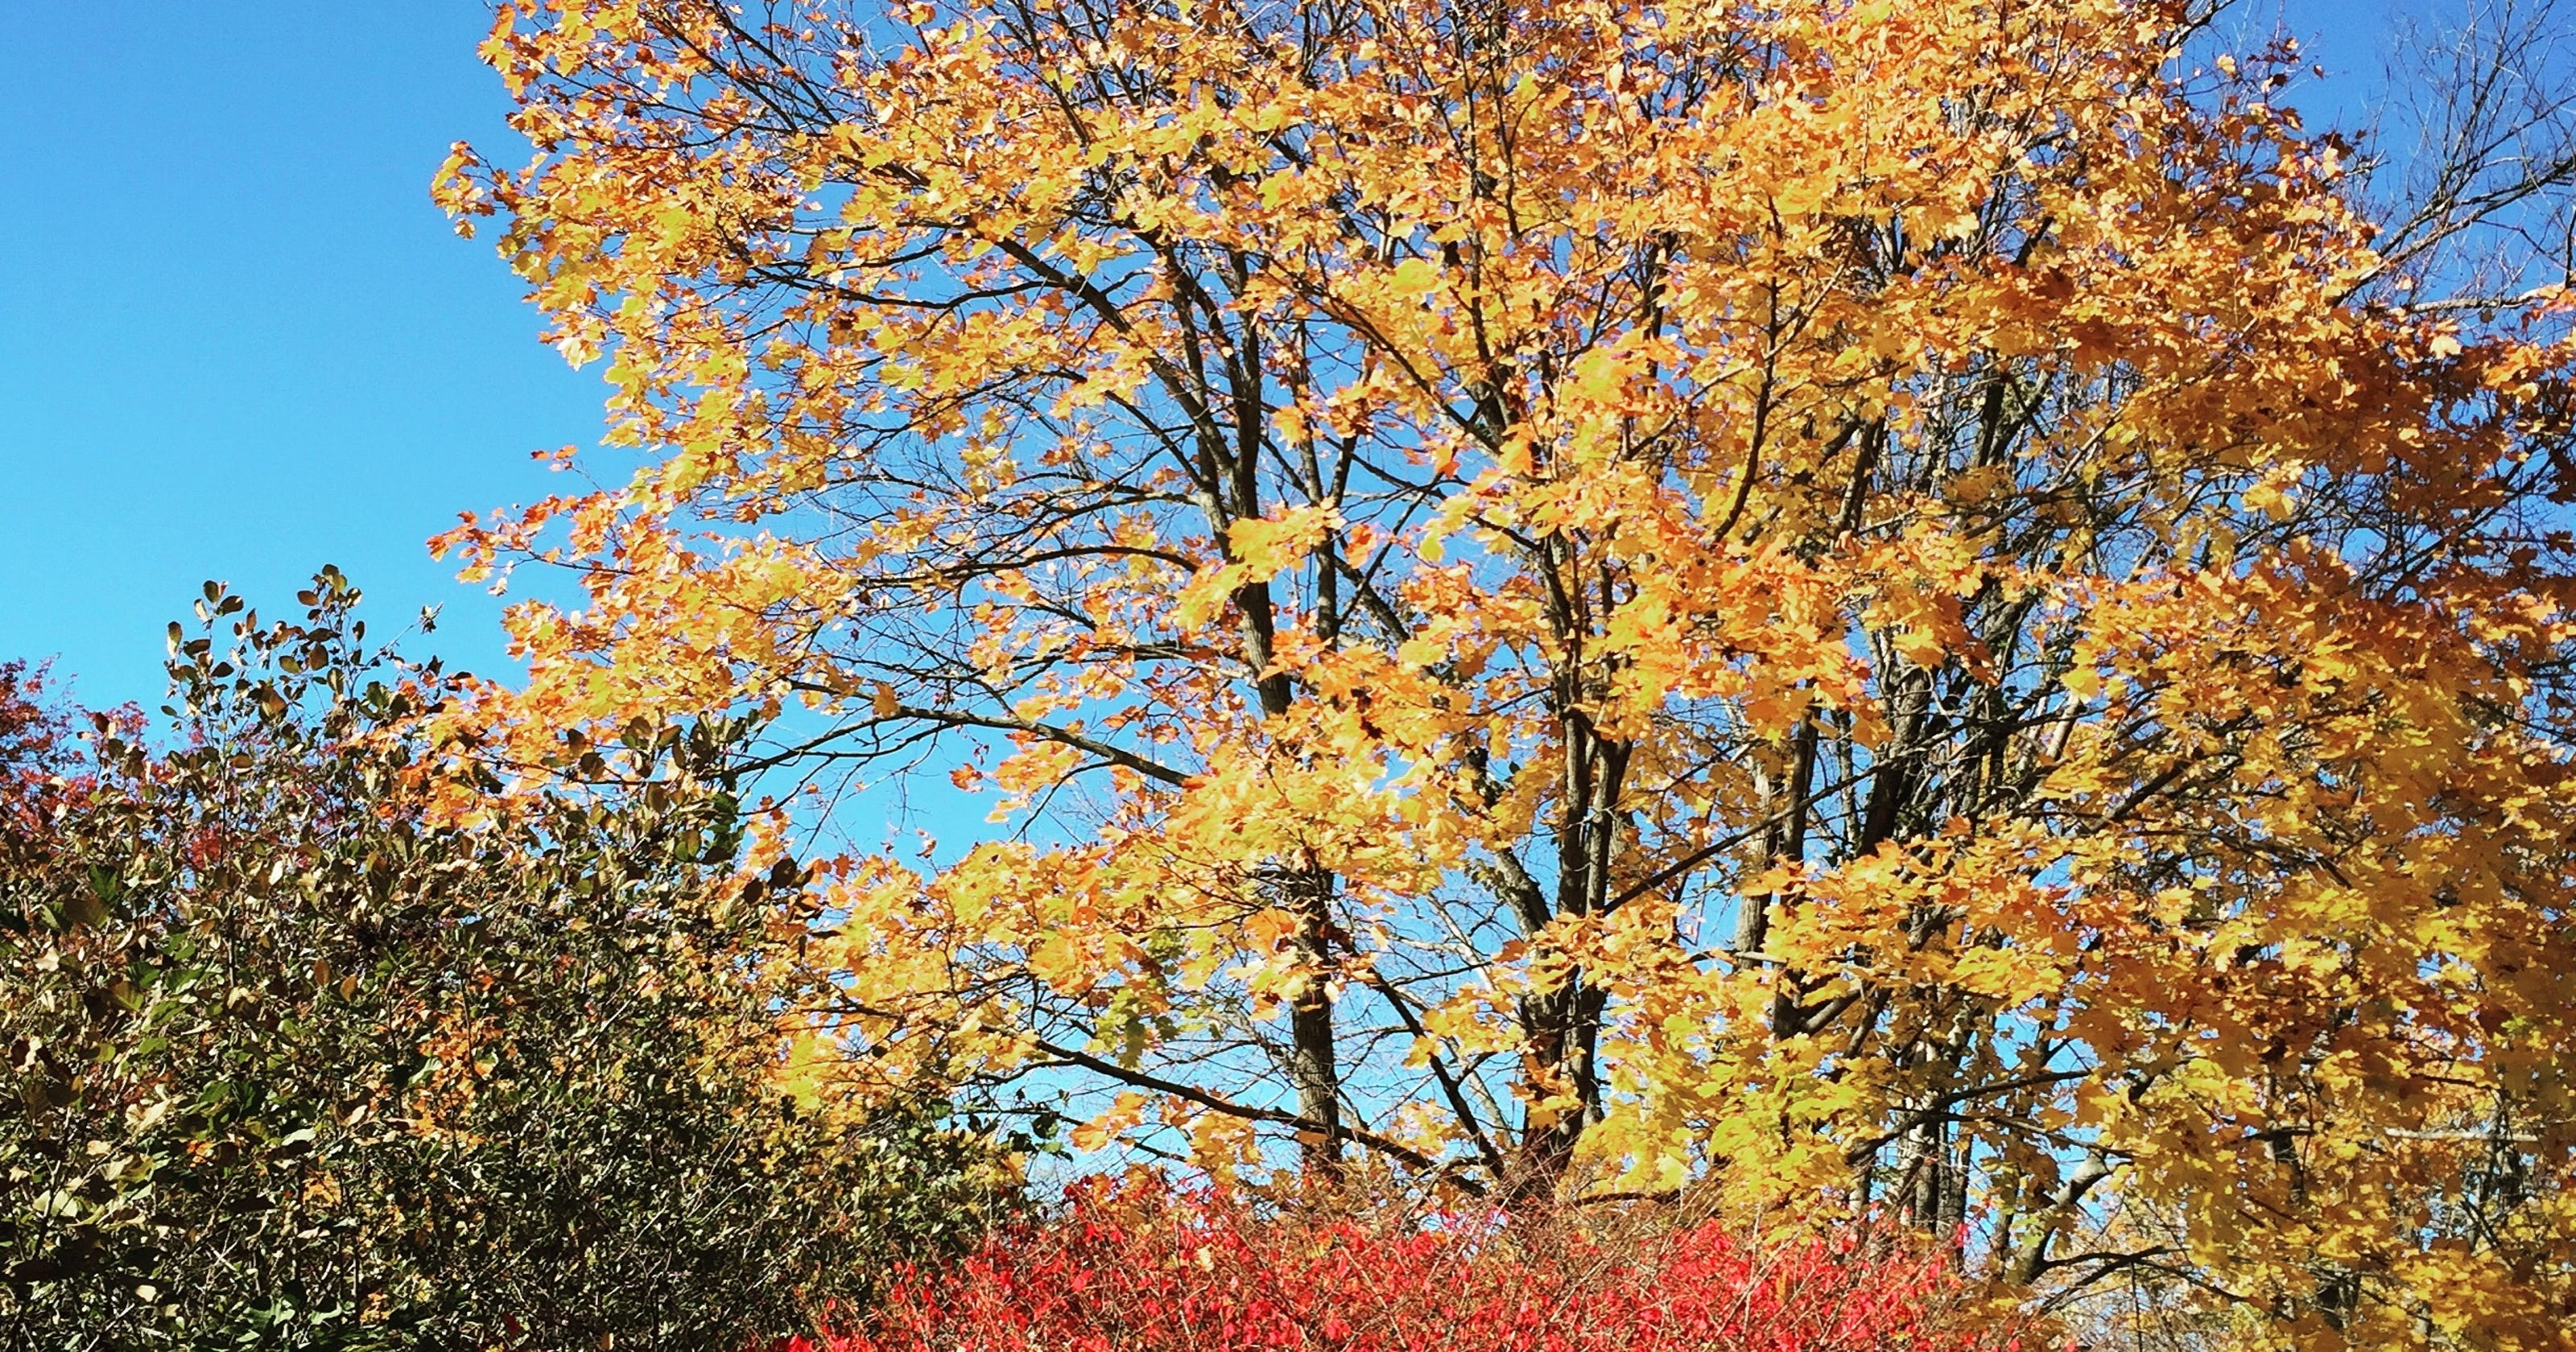 Fall Foliage 2018 Forecast: Best Bets In New York, New England